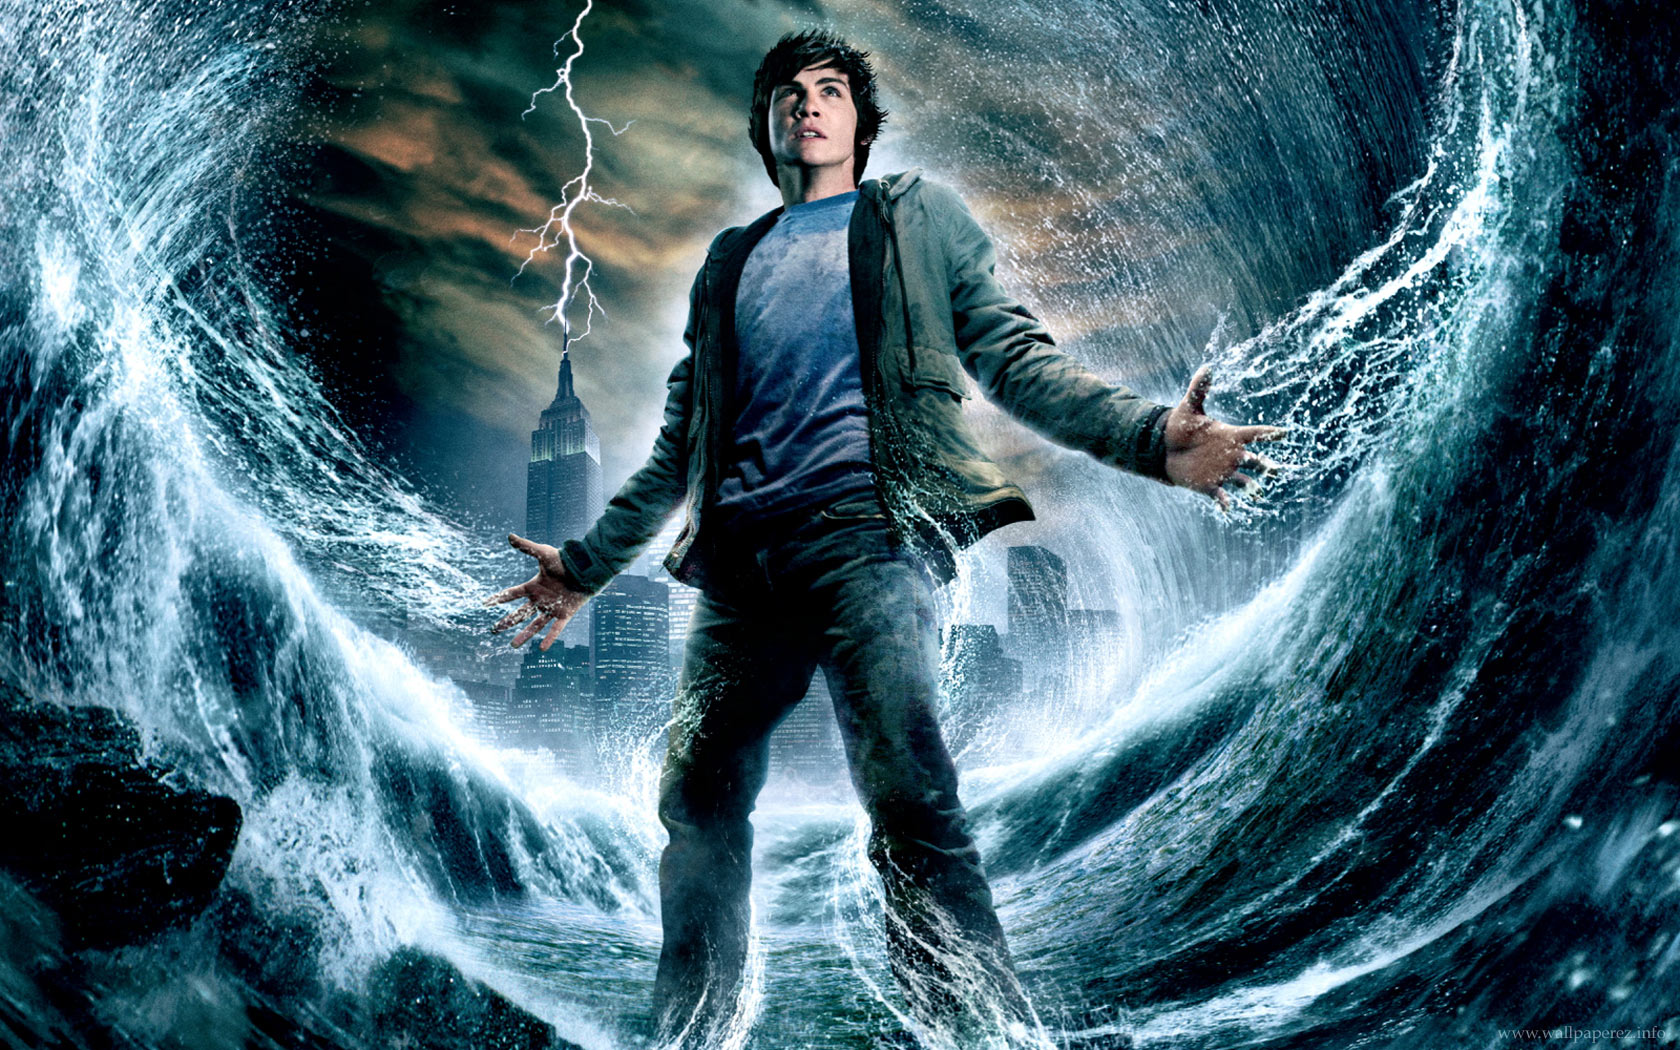 'Percy Jackson' Sequel Forthcoming